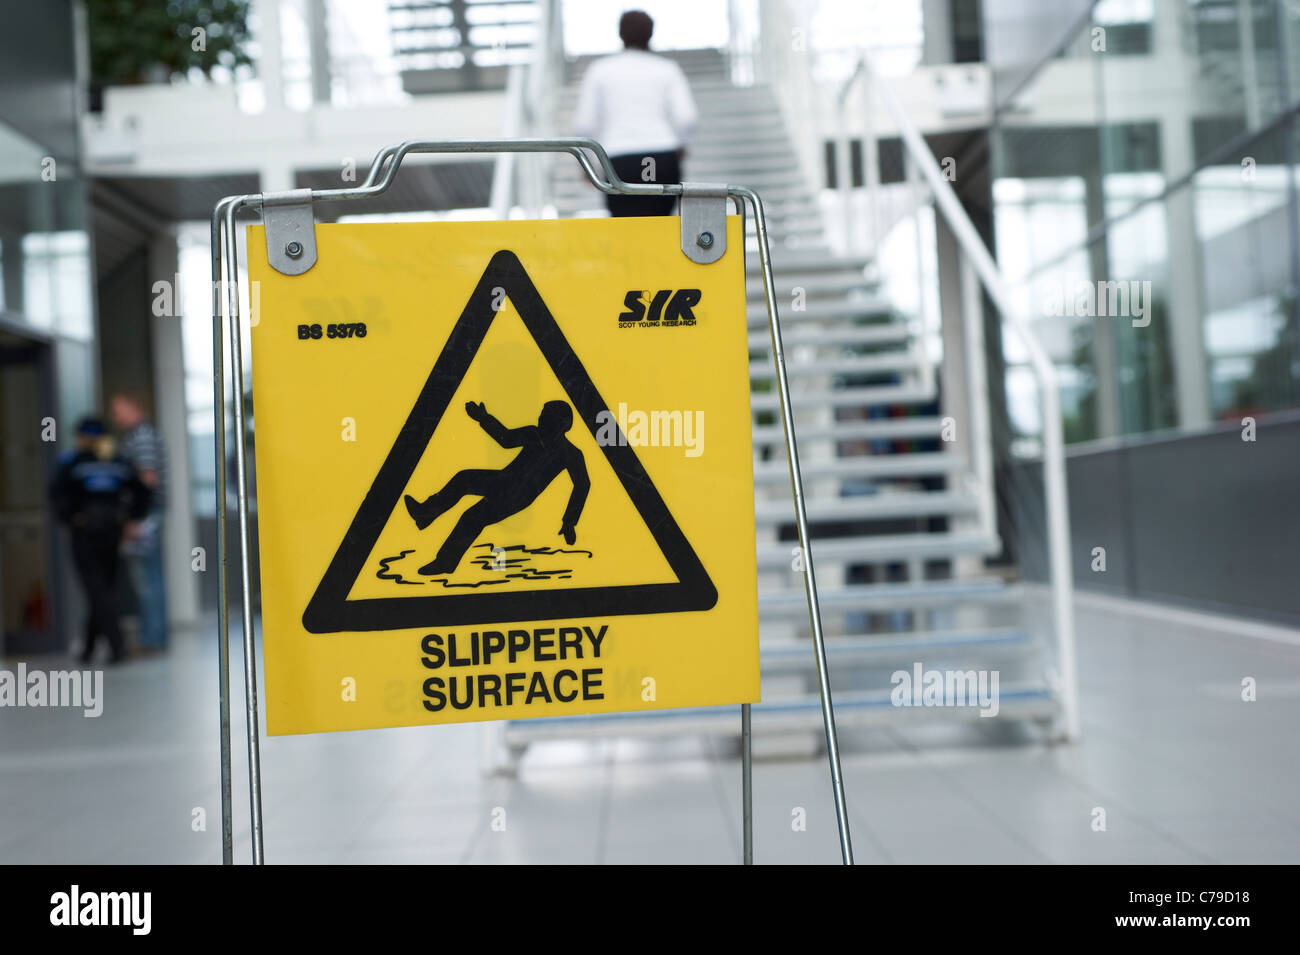 slippery surface - Stock Image